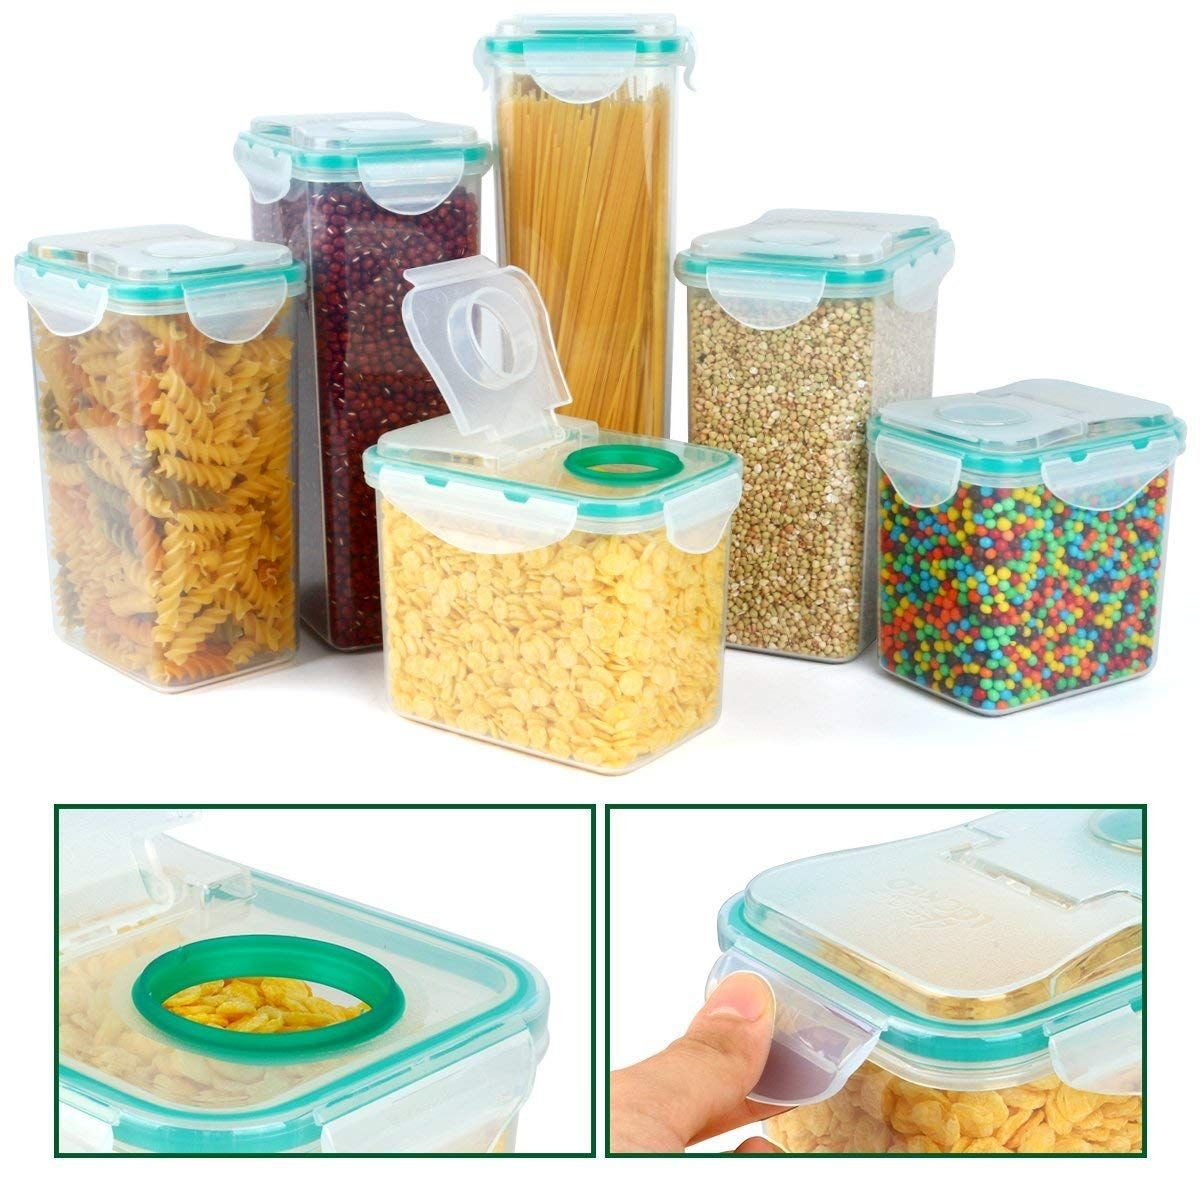 Cereal Container Verones Airtight Plastic Storage Containers Perfect For Food Storage Conta Dry Food Storage Food Storage Containers Kitchen Storage Containers